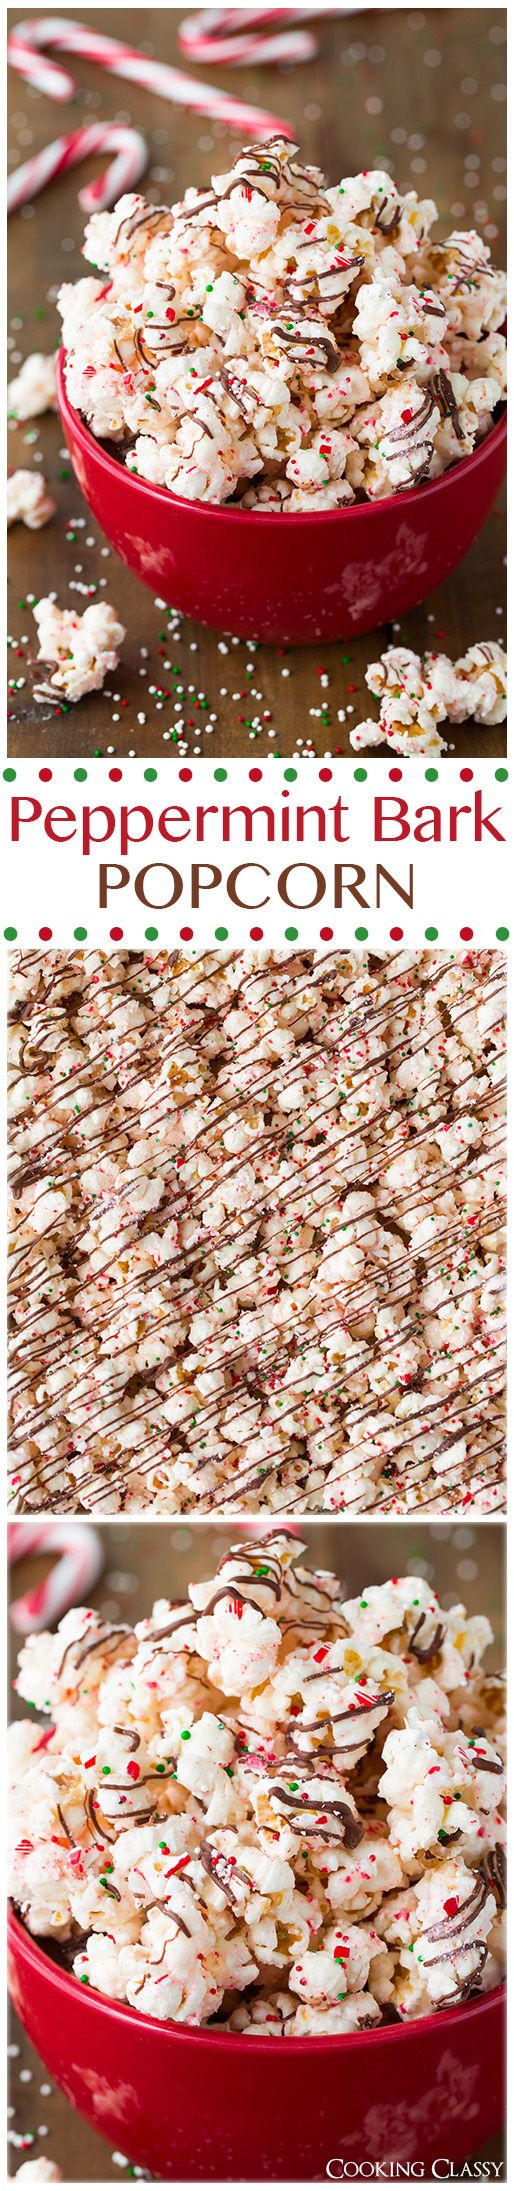 Peppermint Bark Popcorn - this is ADDICTIVE! It's even better than the real thing! Popcorn is coated with peppermint flavored white chocolate then it's drizzled with semi sweet chocolate and sprinkled (Christmas Recipes Snacks)